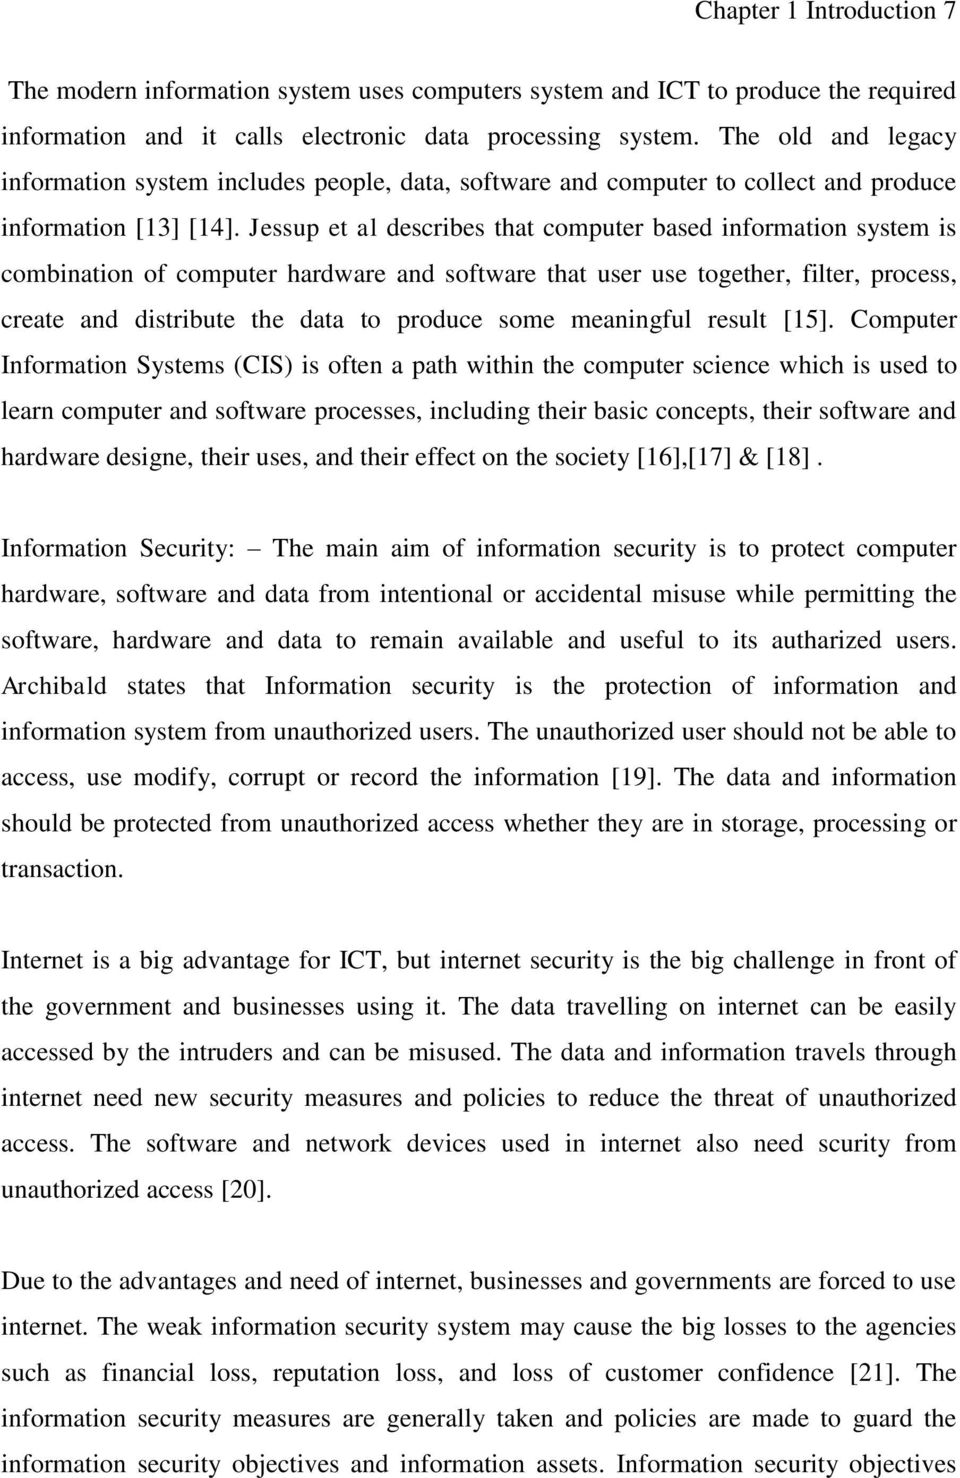 Jessup et al describes that computer based information system is combination of computer hardware and software that user use together, filter, process, create and distribute the data to produce some